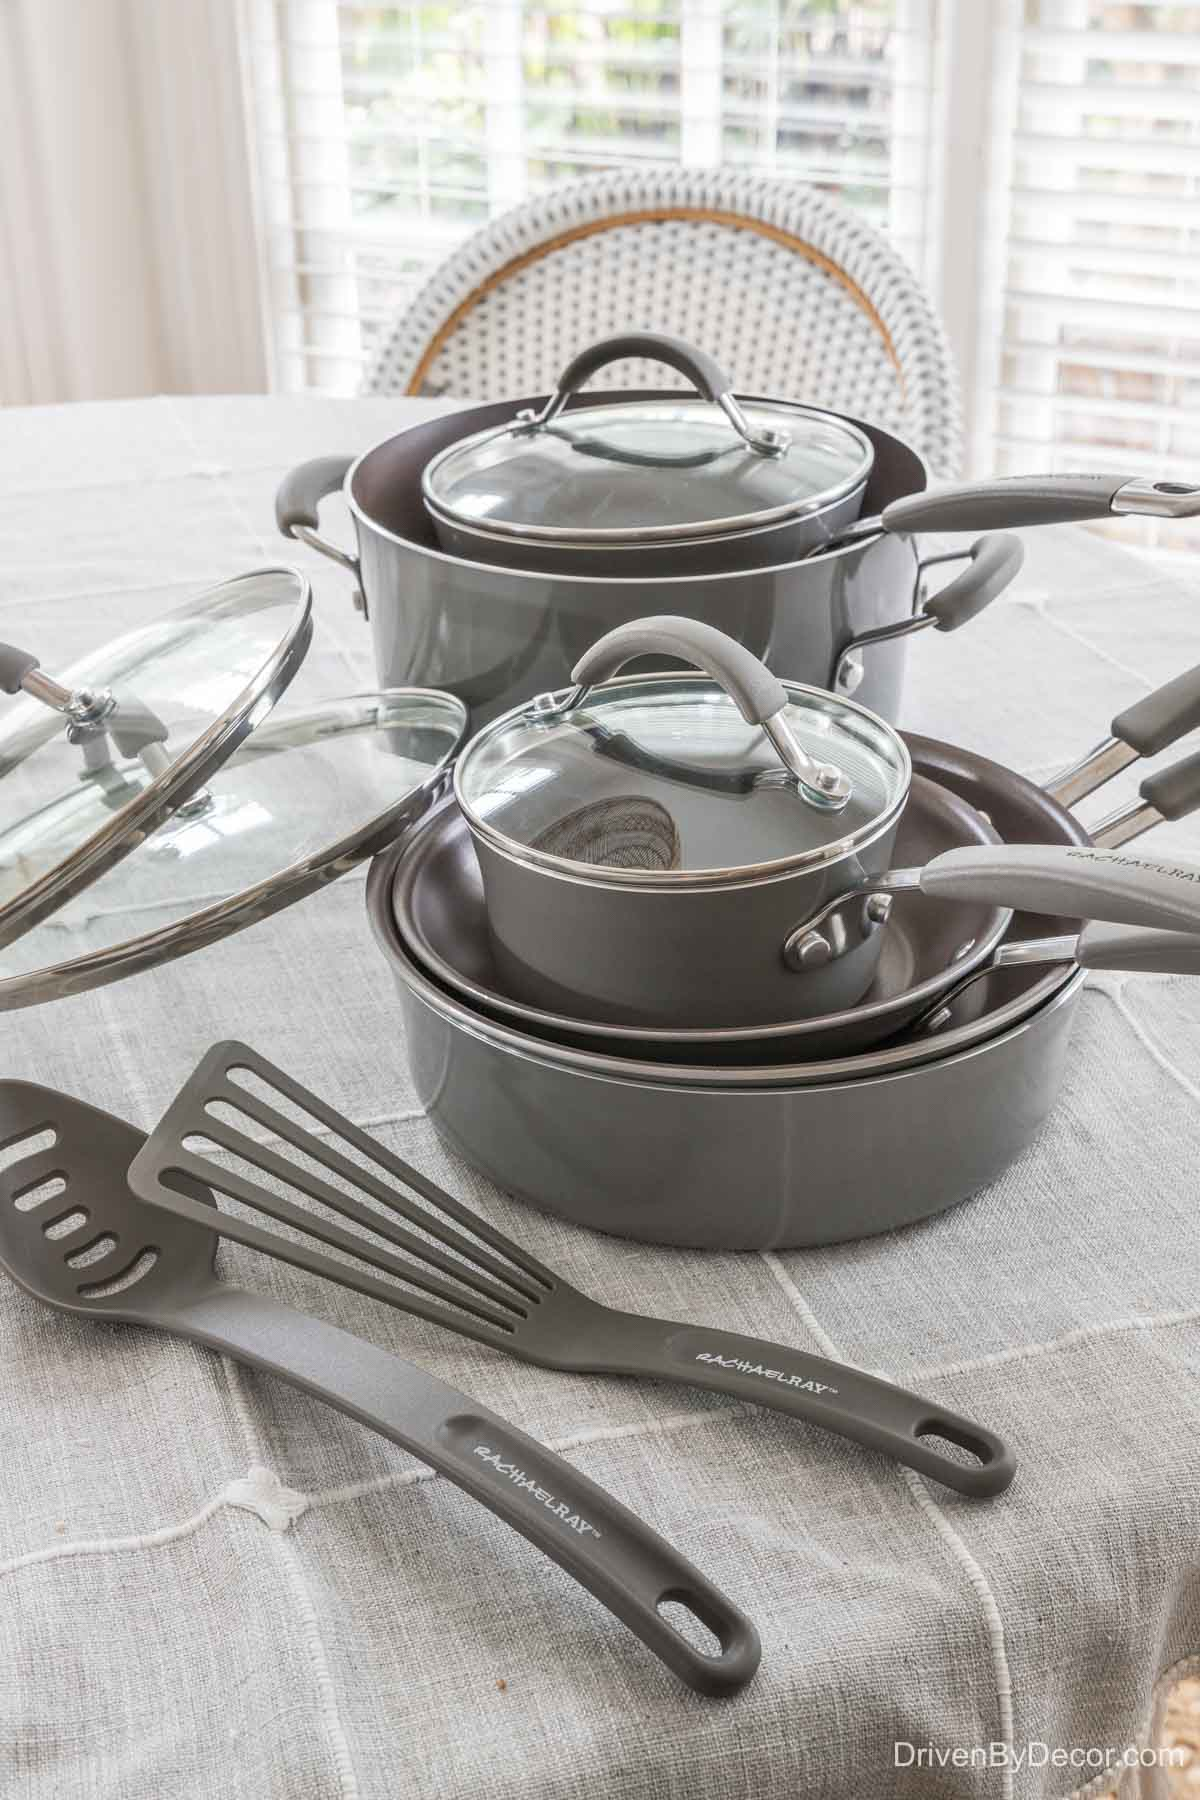 Highly rated affordable cookware set